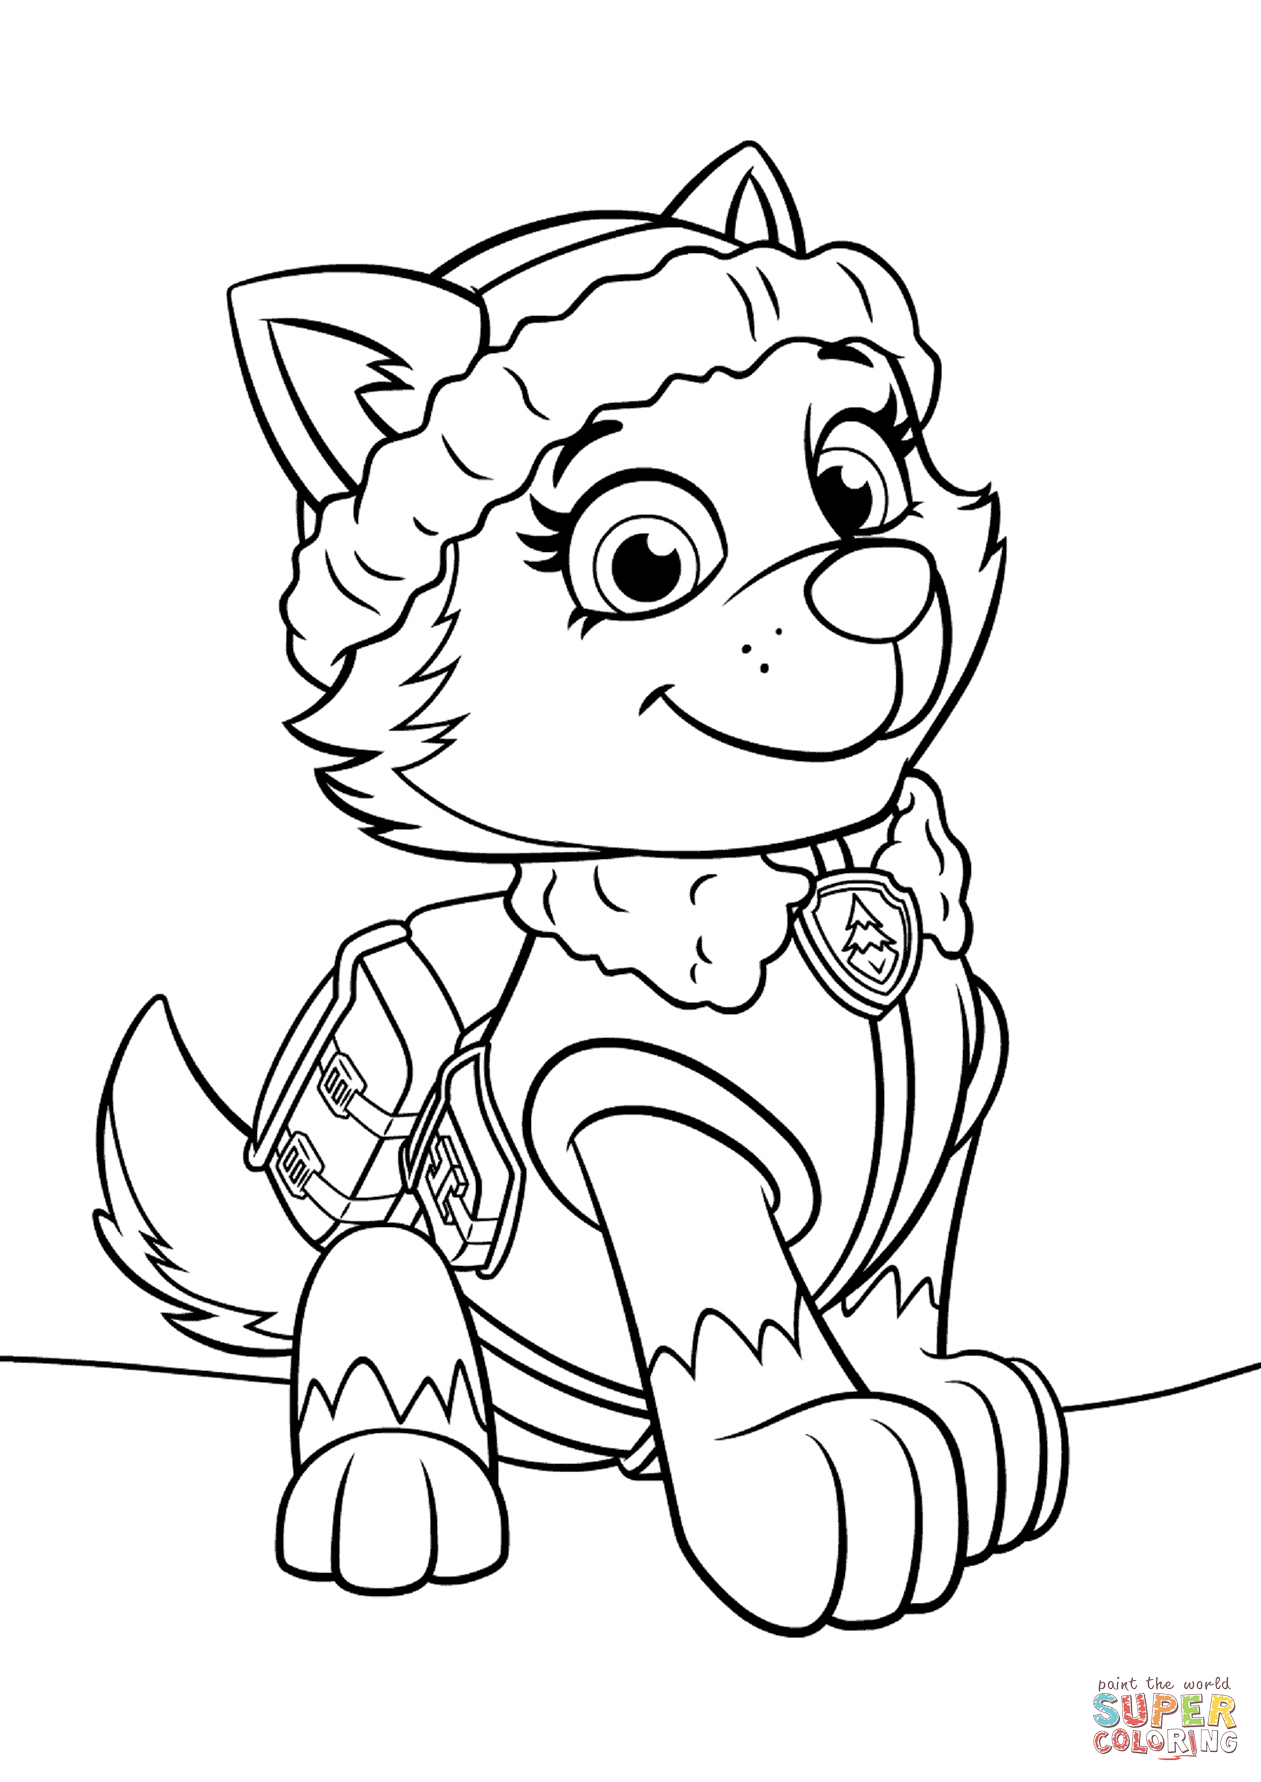 Paw Patrol Everest Coloring Page Free Printable Coloring Pages